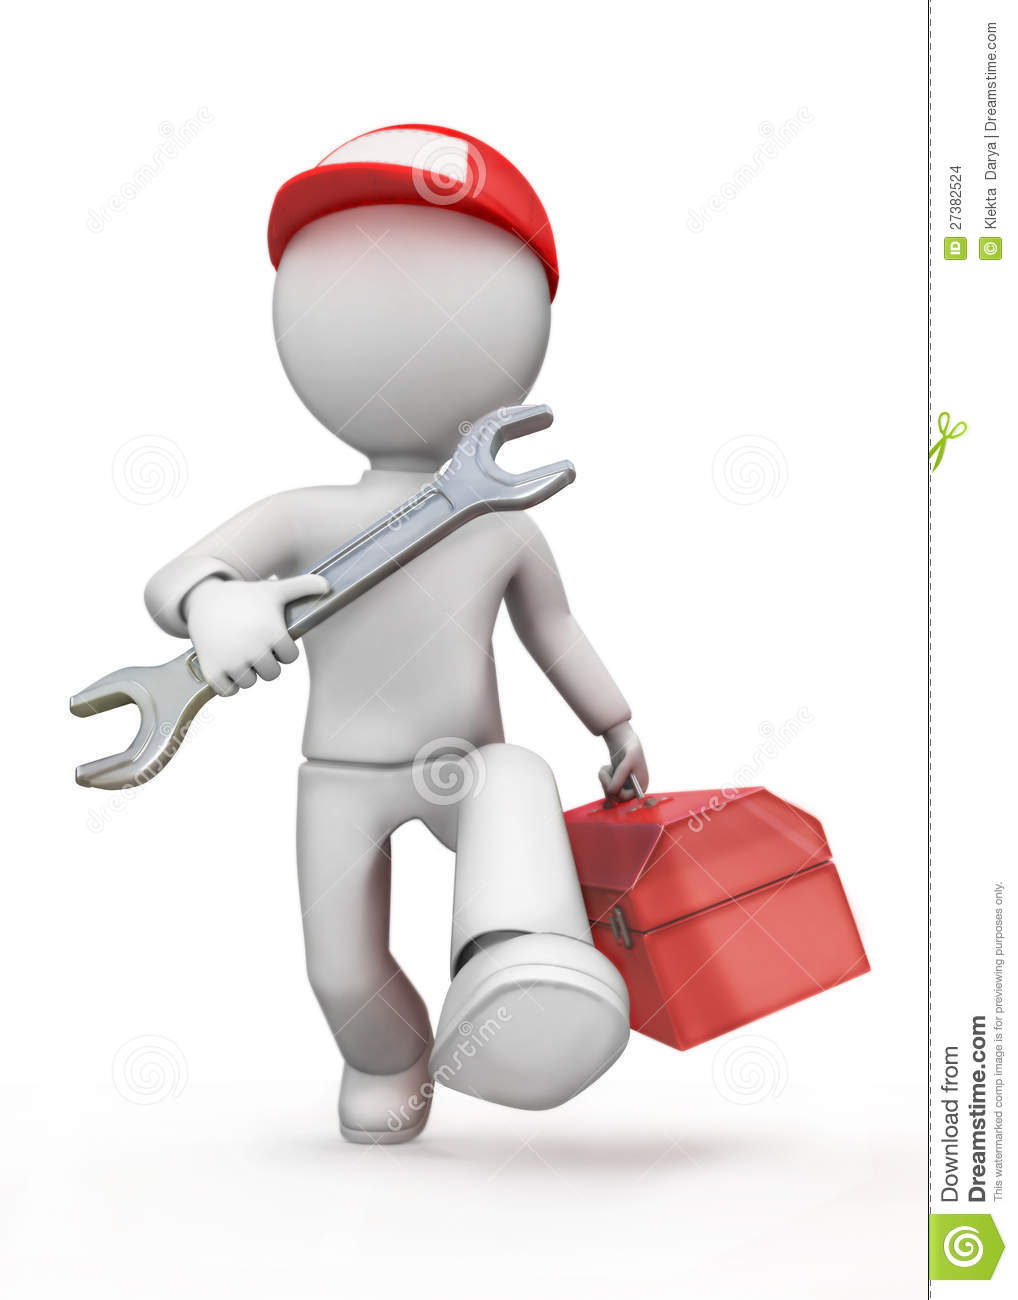 Mechanical Engineer. Stock Images - Image: 27382524